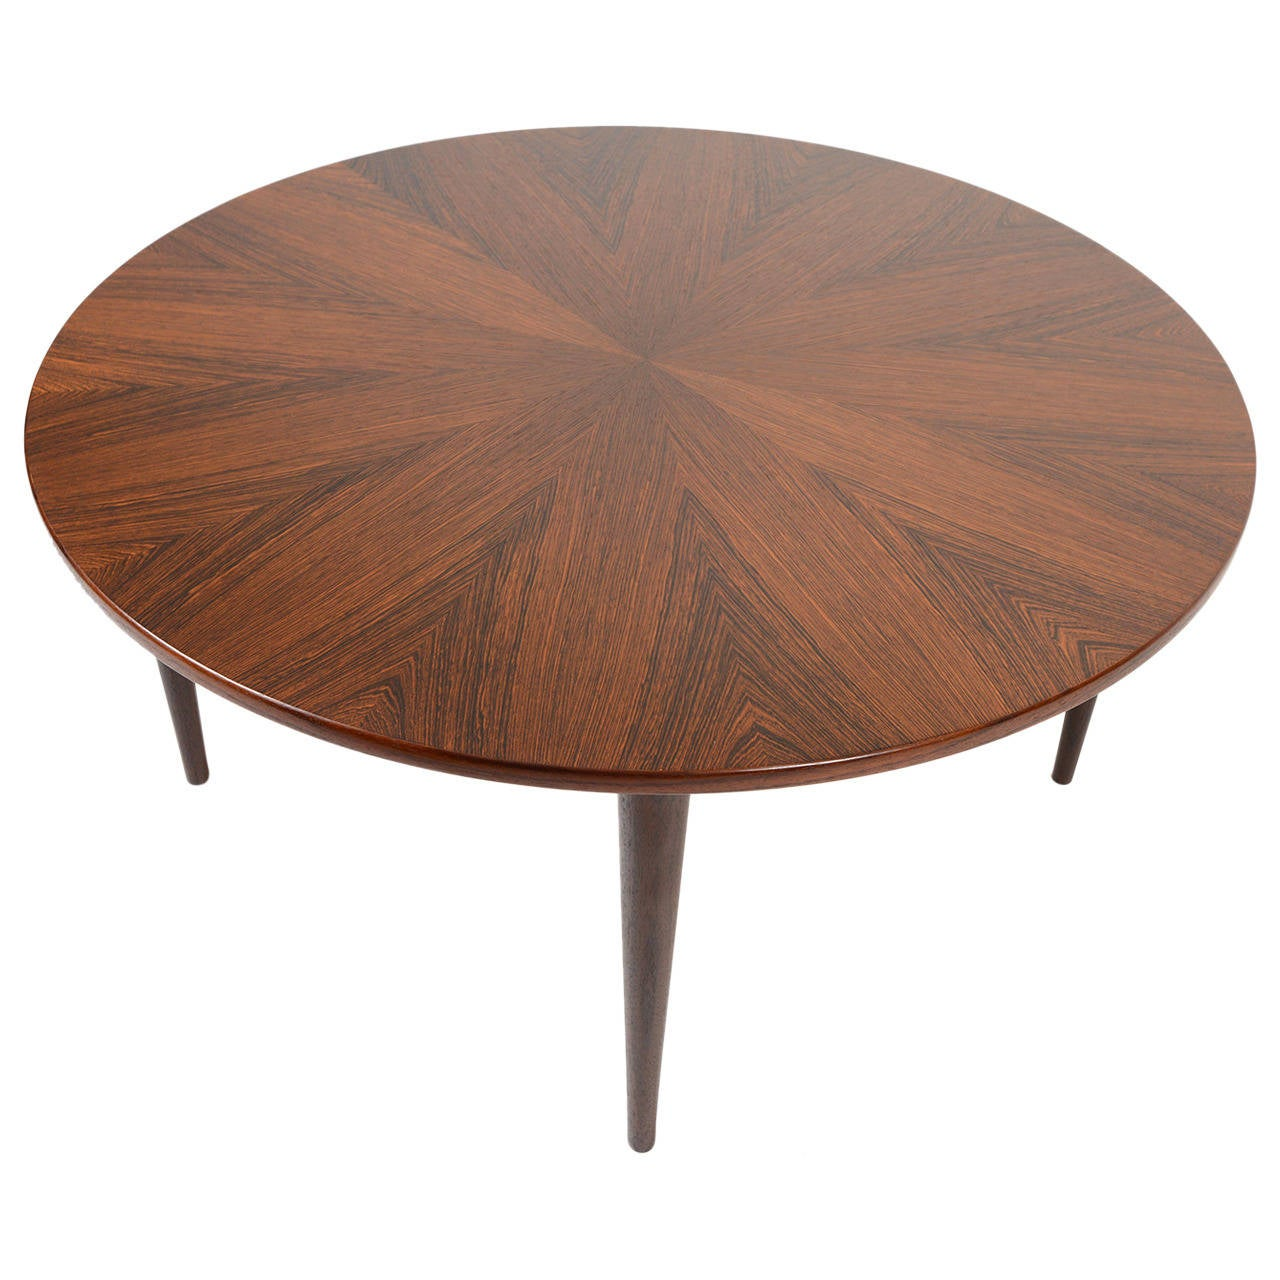 Danish Modern Round Starburst Brazilian Rosewood Coffee Table At 1stdibs